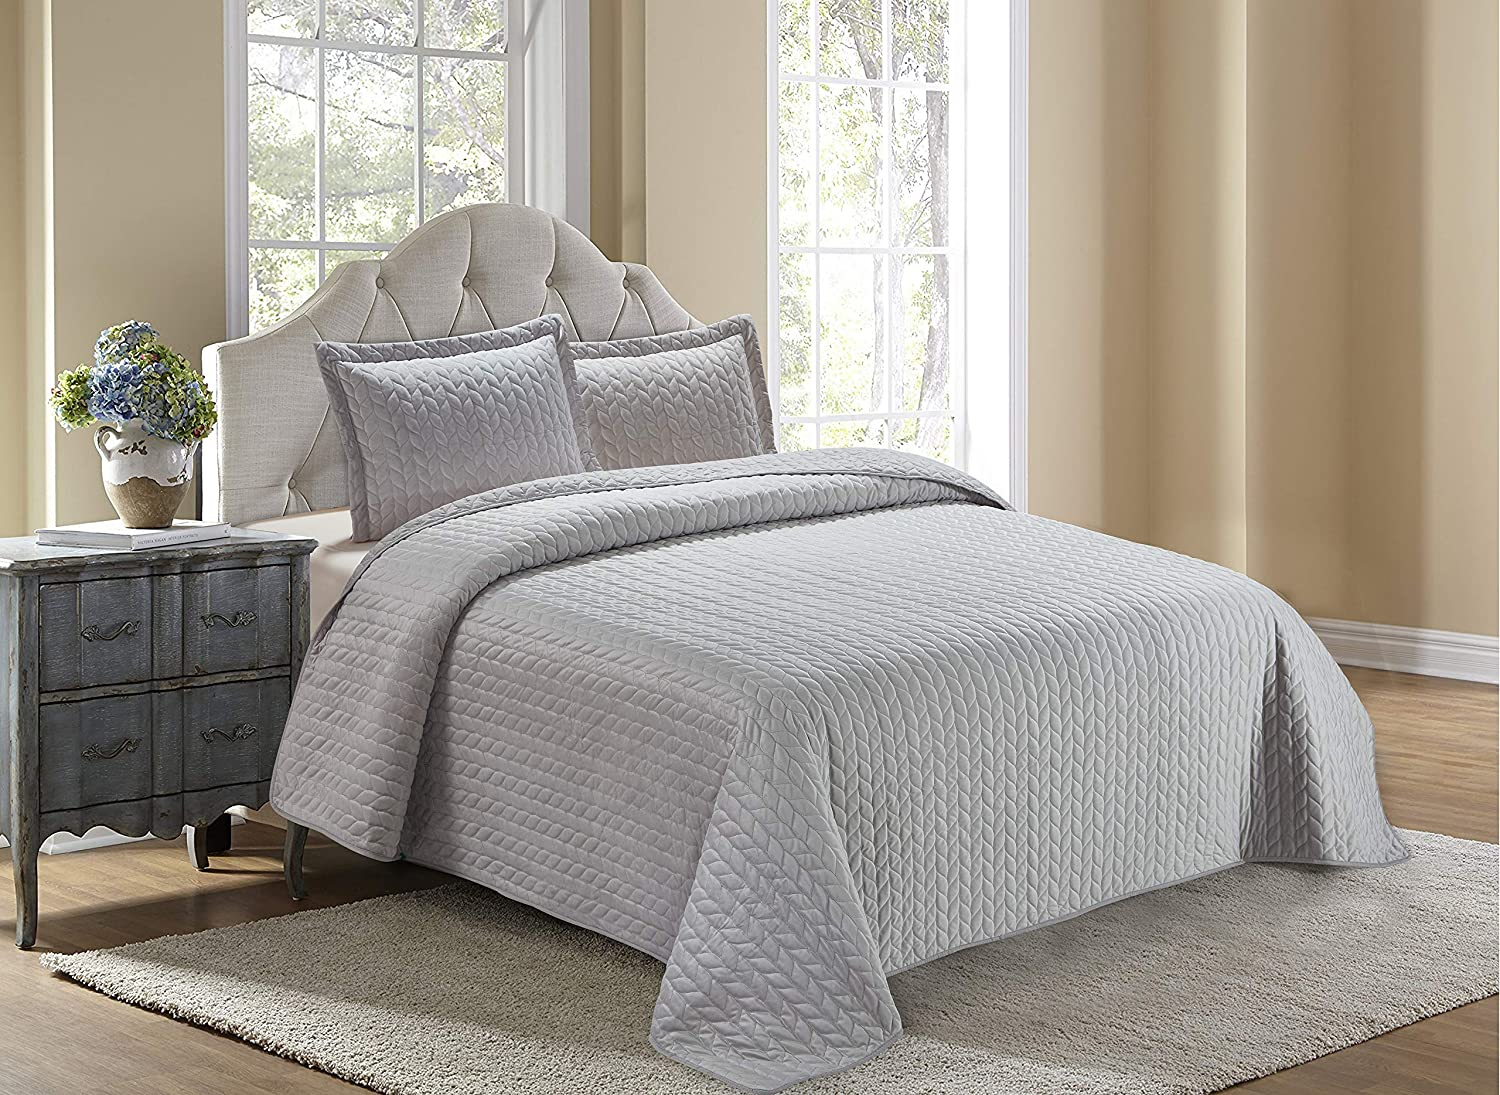 Home Collection Velvet 3 Piece King/California King Modern Quilted Coverlet Bedspread Set Velvet Solid Silver/Light Grey Soft Touch New